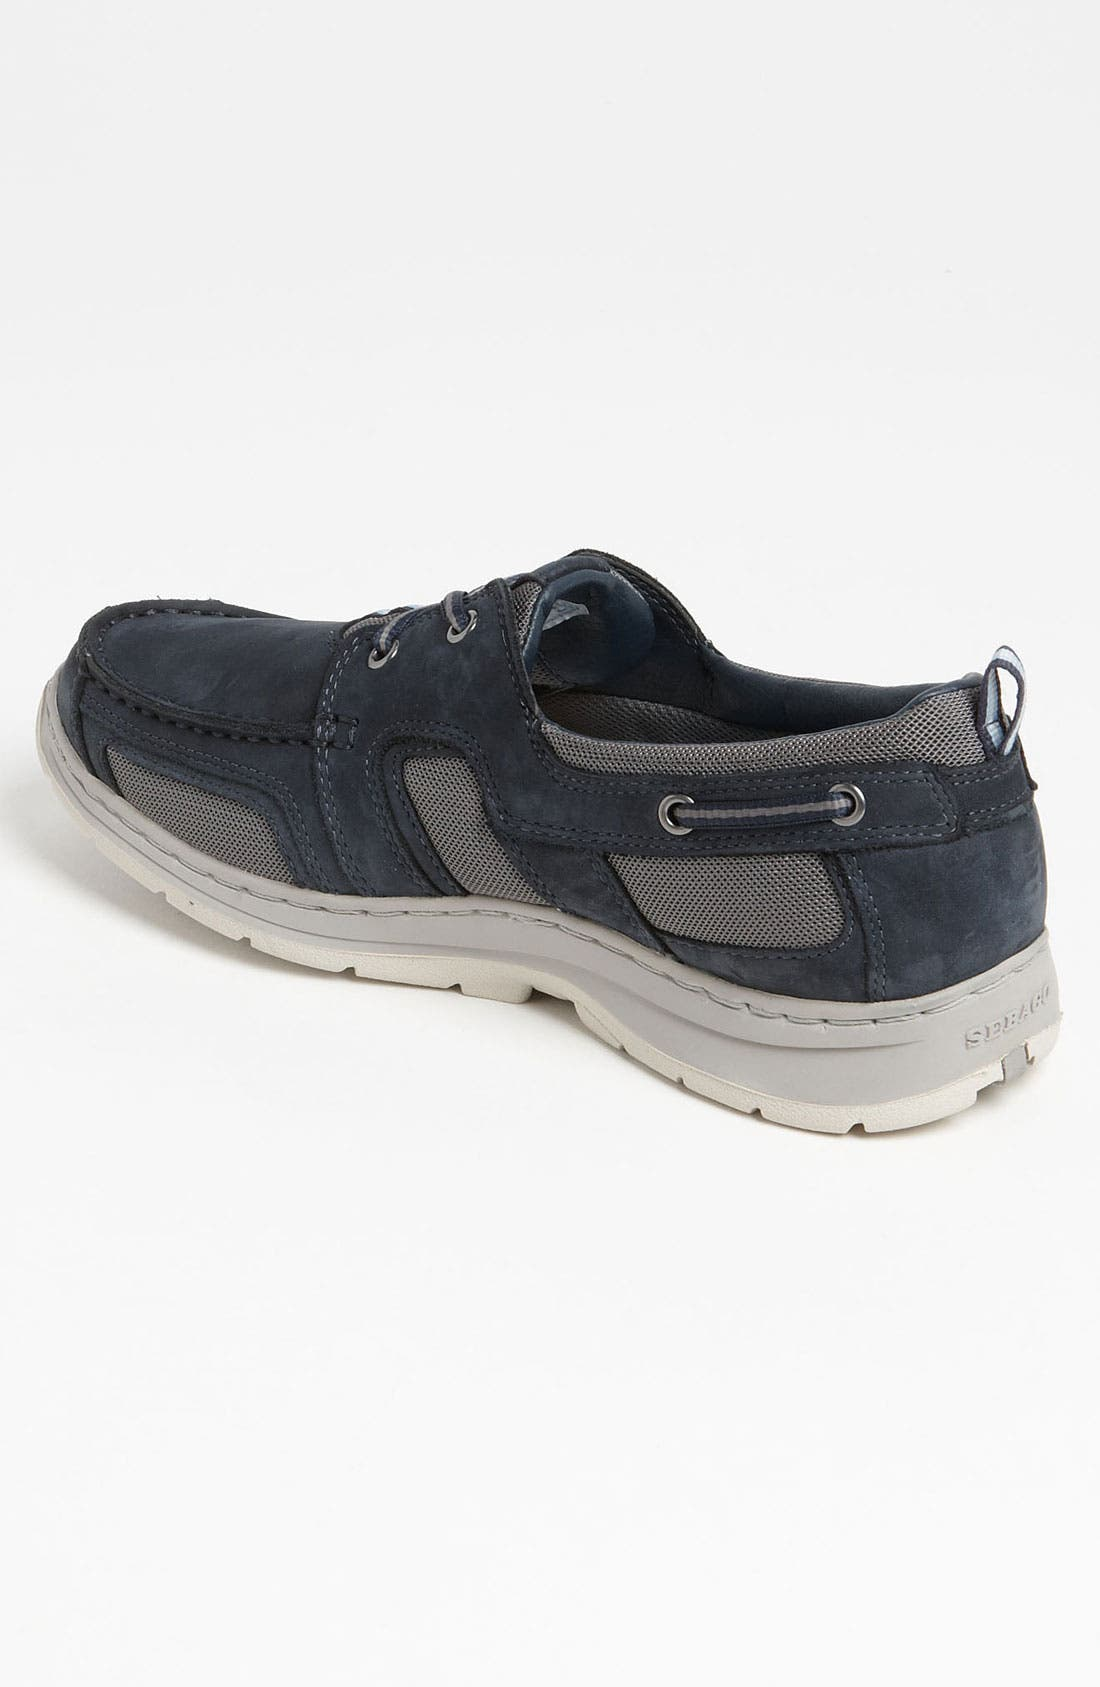 Alternate Image 2  - Sebago 'Offshore Catch' Boat Shoe